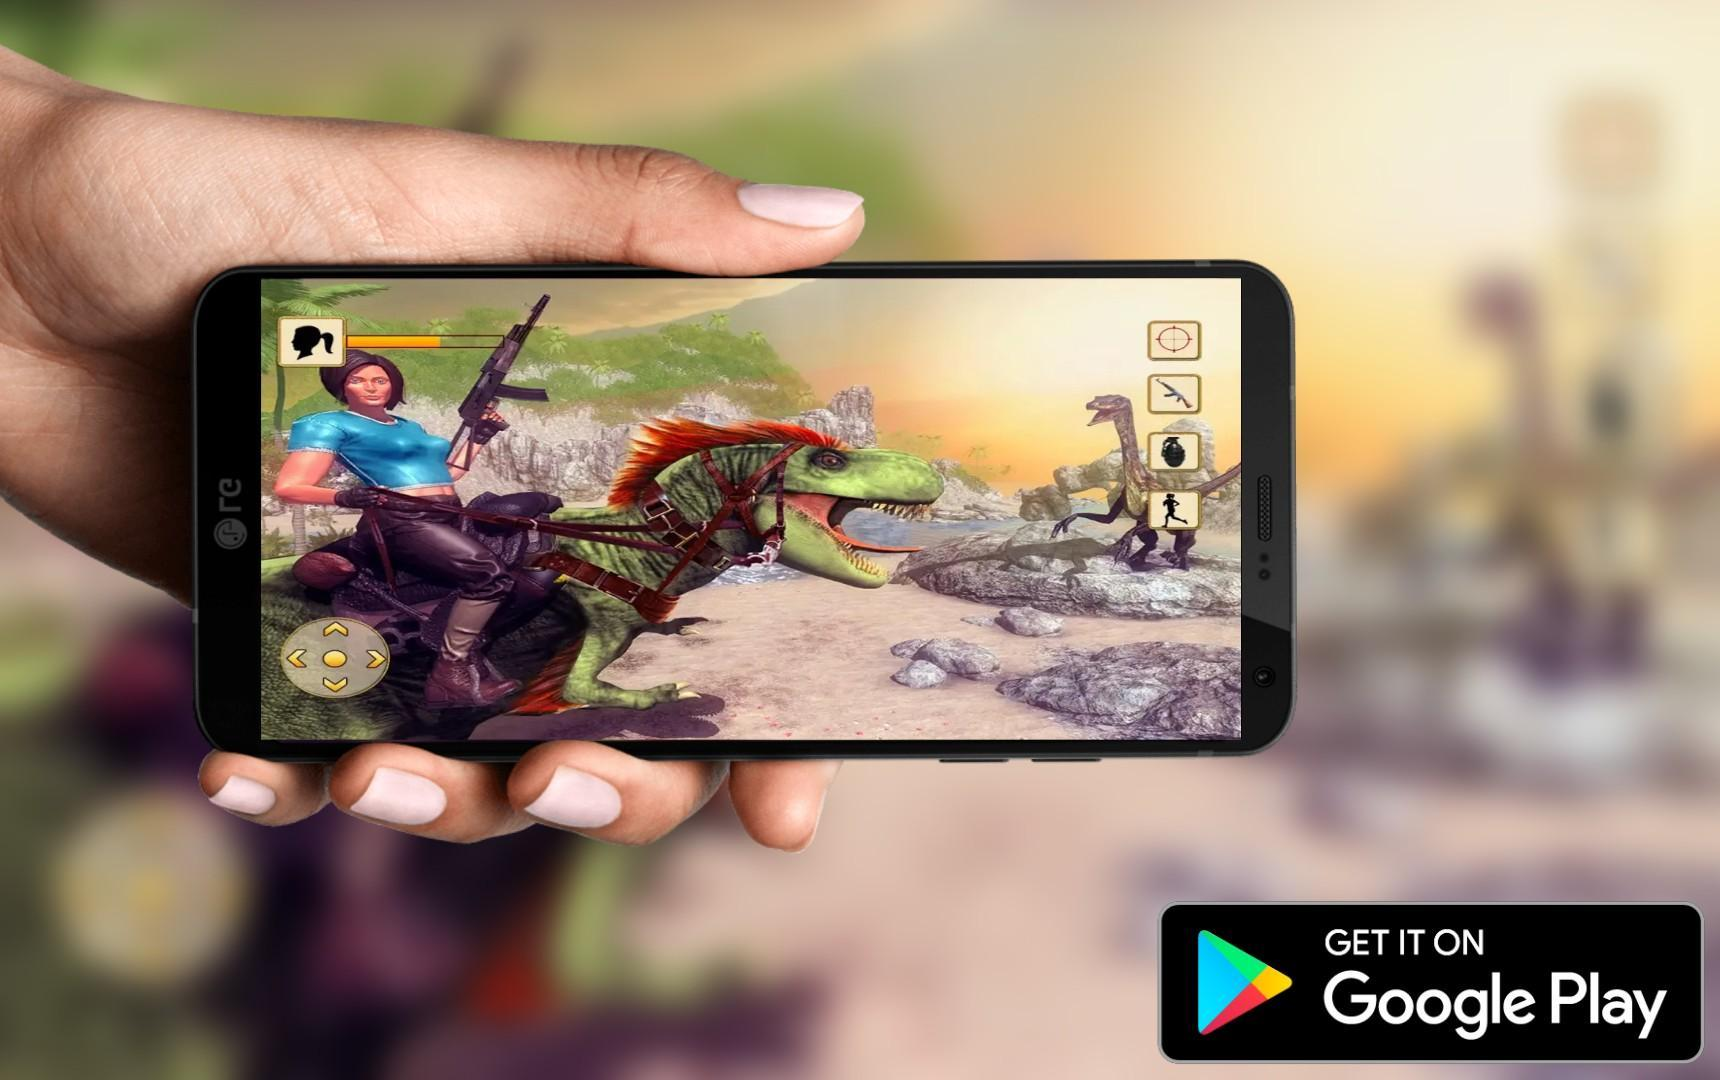 Guide For ARK Survival Evolved 2 cho Android - Tải về APK